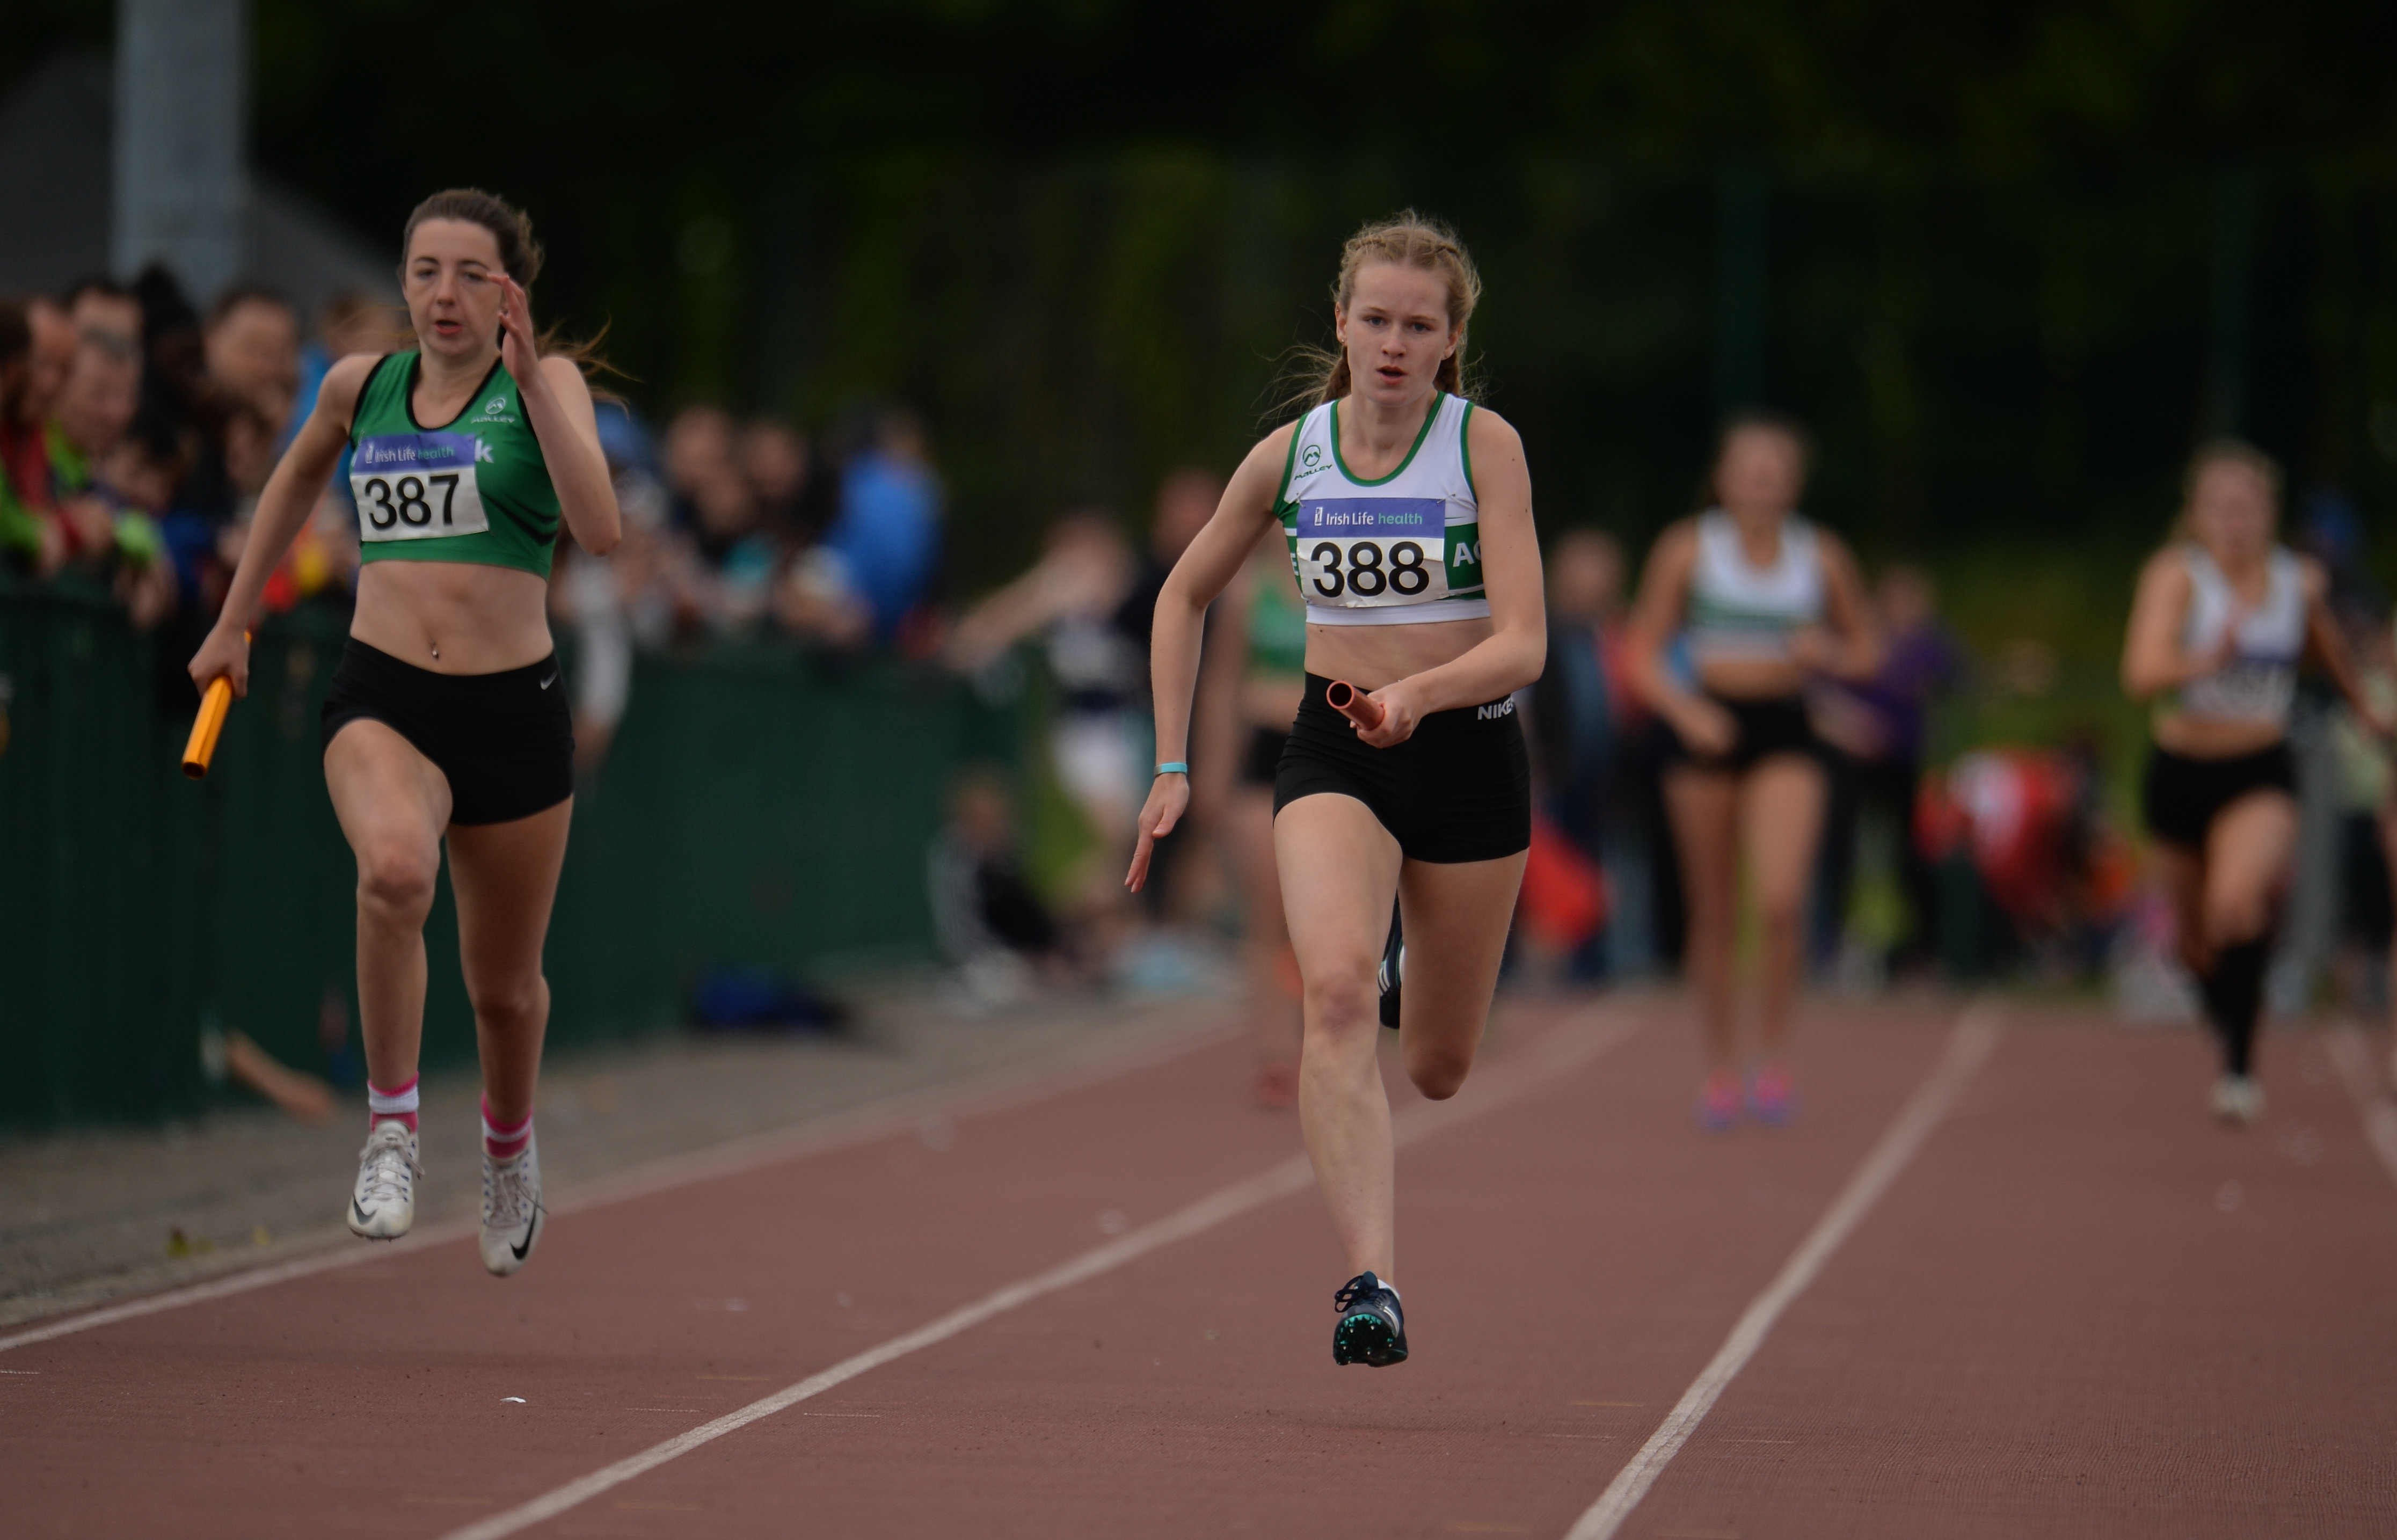 Record breaking day at the Irish Life Health Inter Club Juvenile Relays